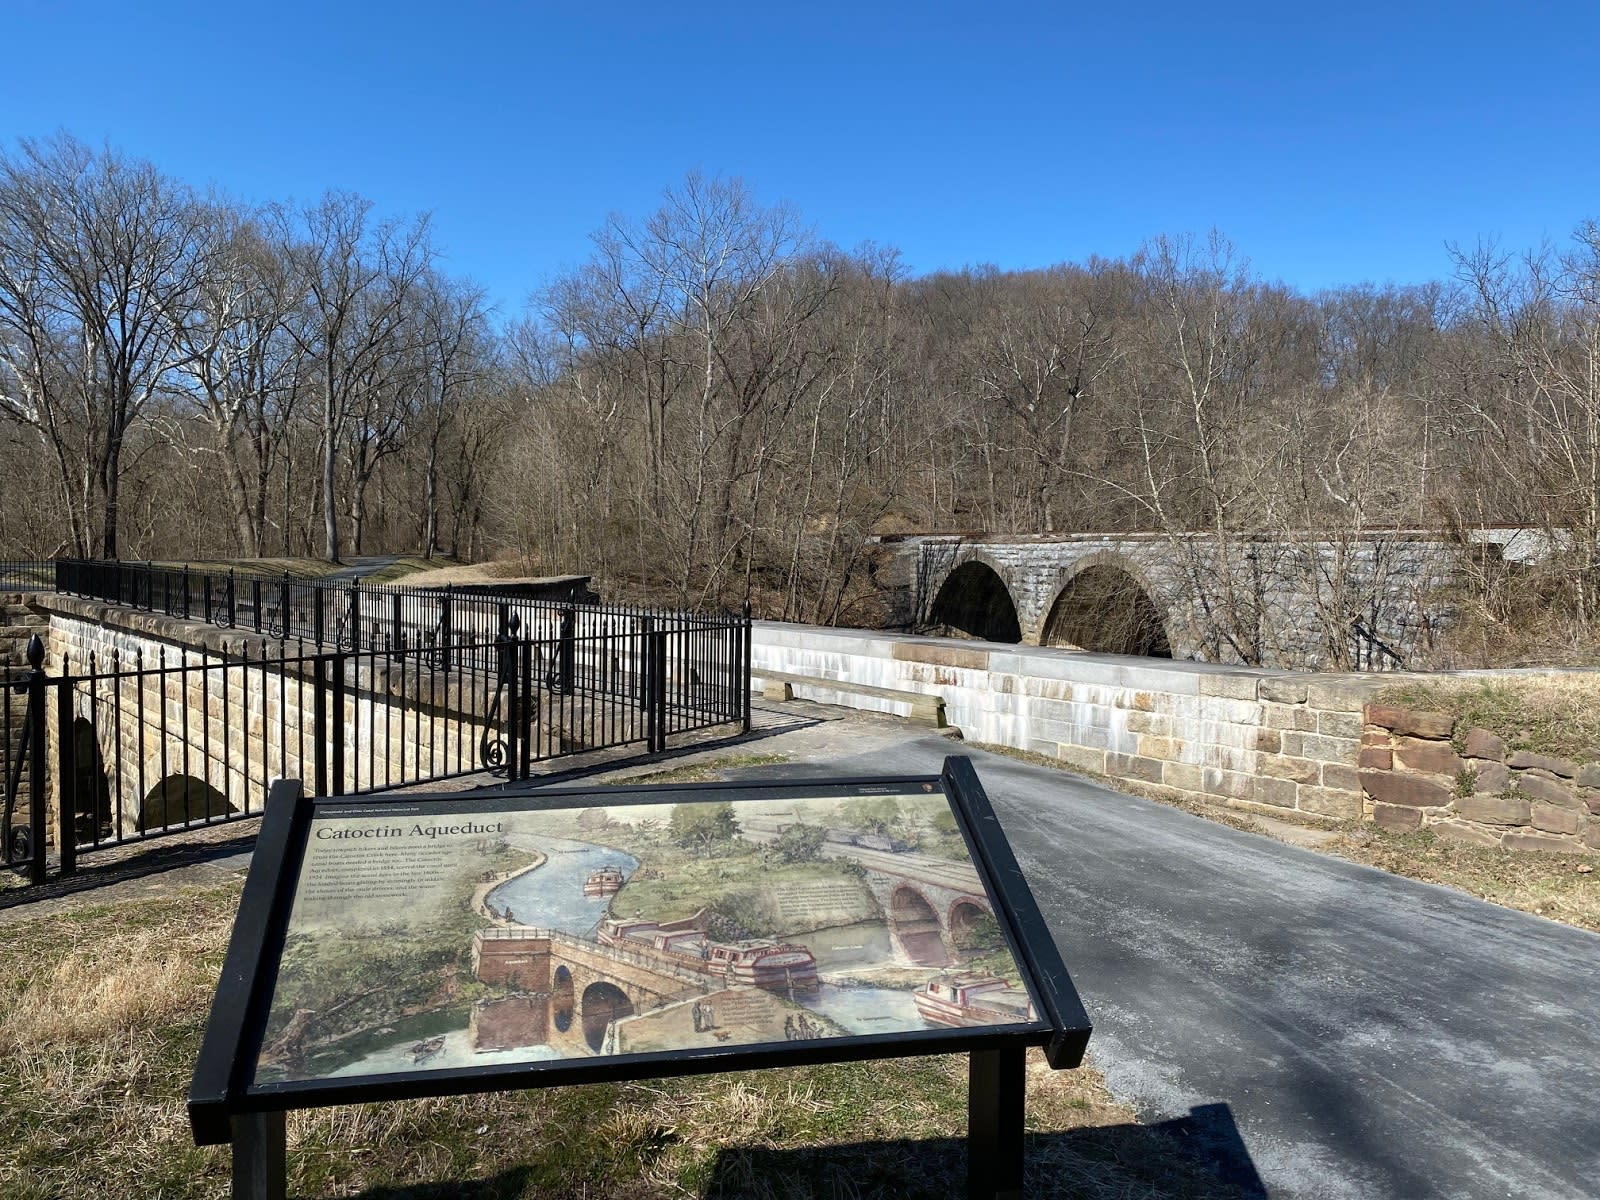 The Chesapeake and Ohio Canal Towpath